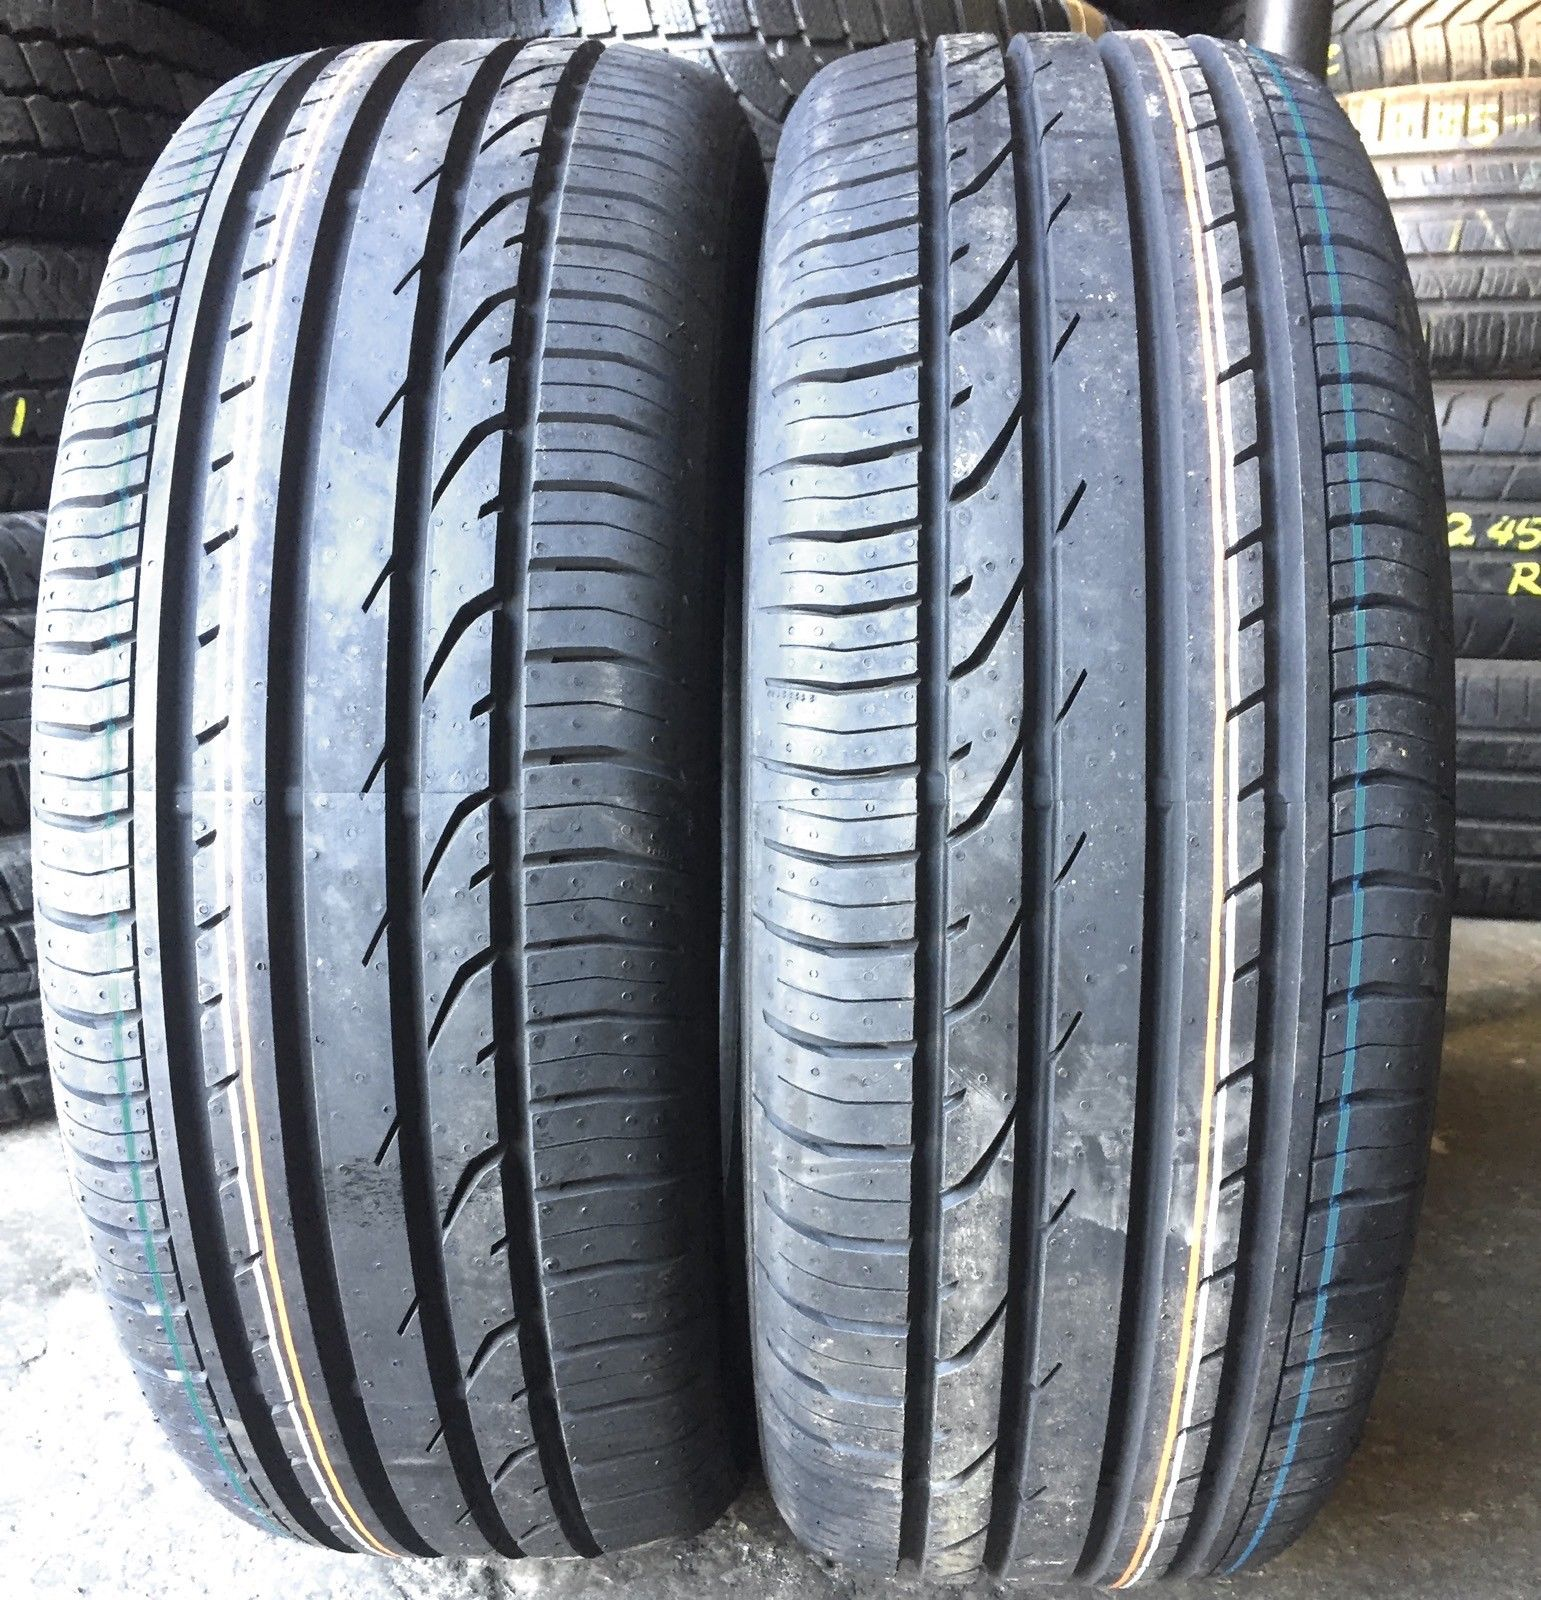 205-55-16 91V Continental ContiPremiumContact2 Summer Tyres  R.New Continental